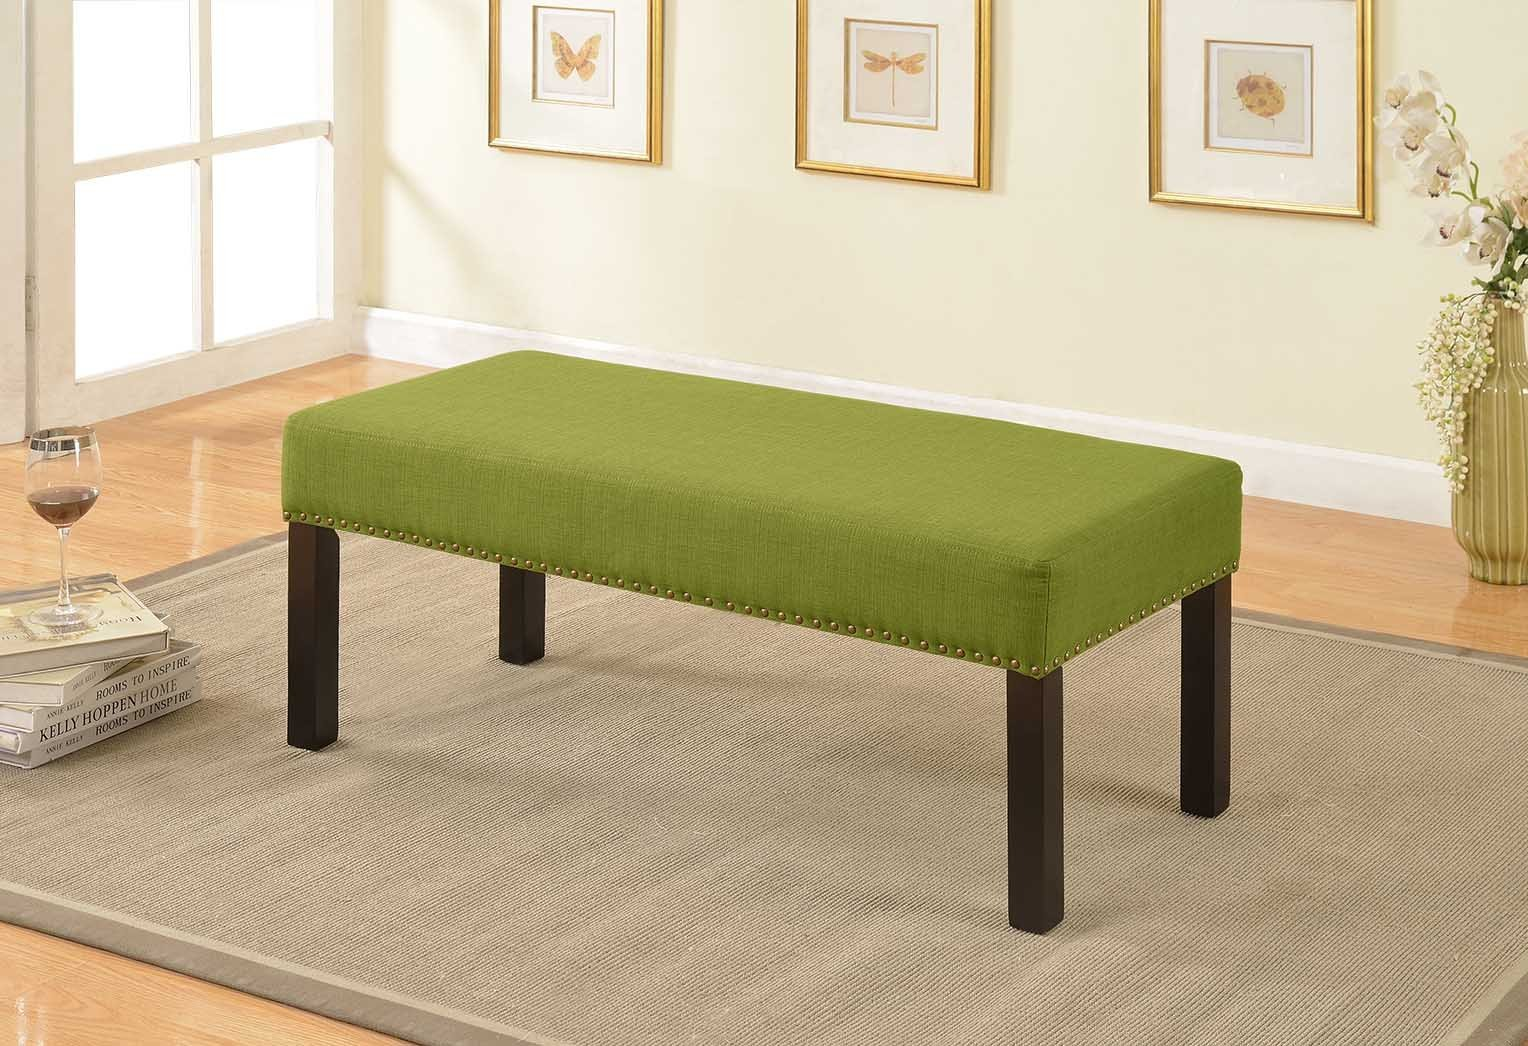 Container Furniture Direct Alma Collection Contemporary Upholstered Fabric Decorative Accent Bench Nailhead Trim, Lime Green